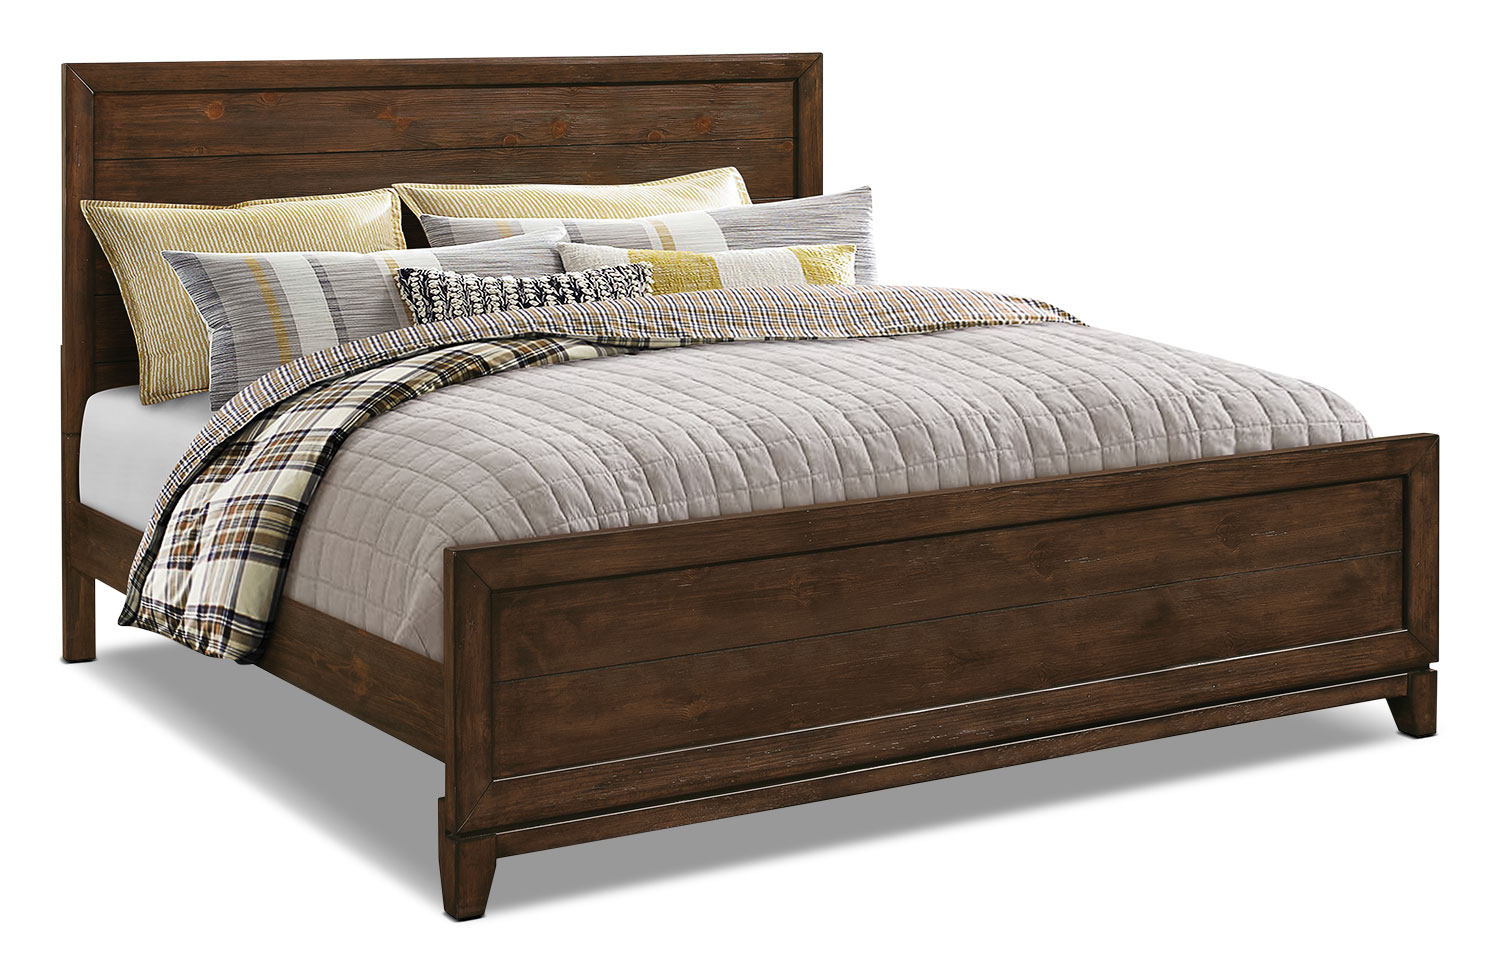 Tacoma king bed the brick for Furniture and mattress warehouse king